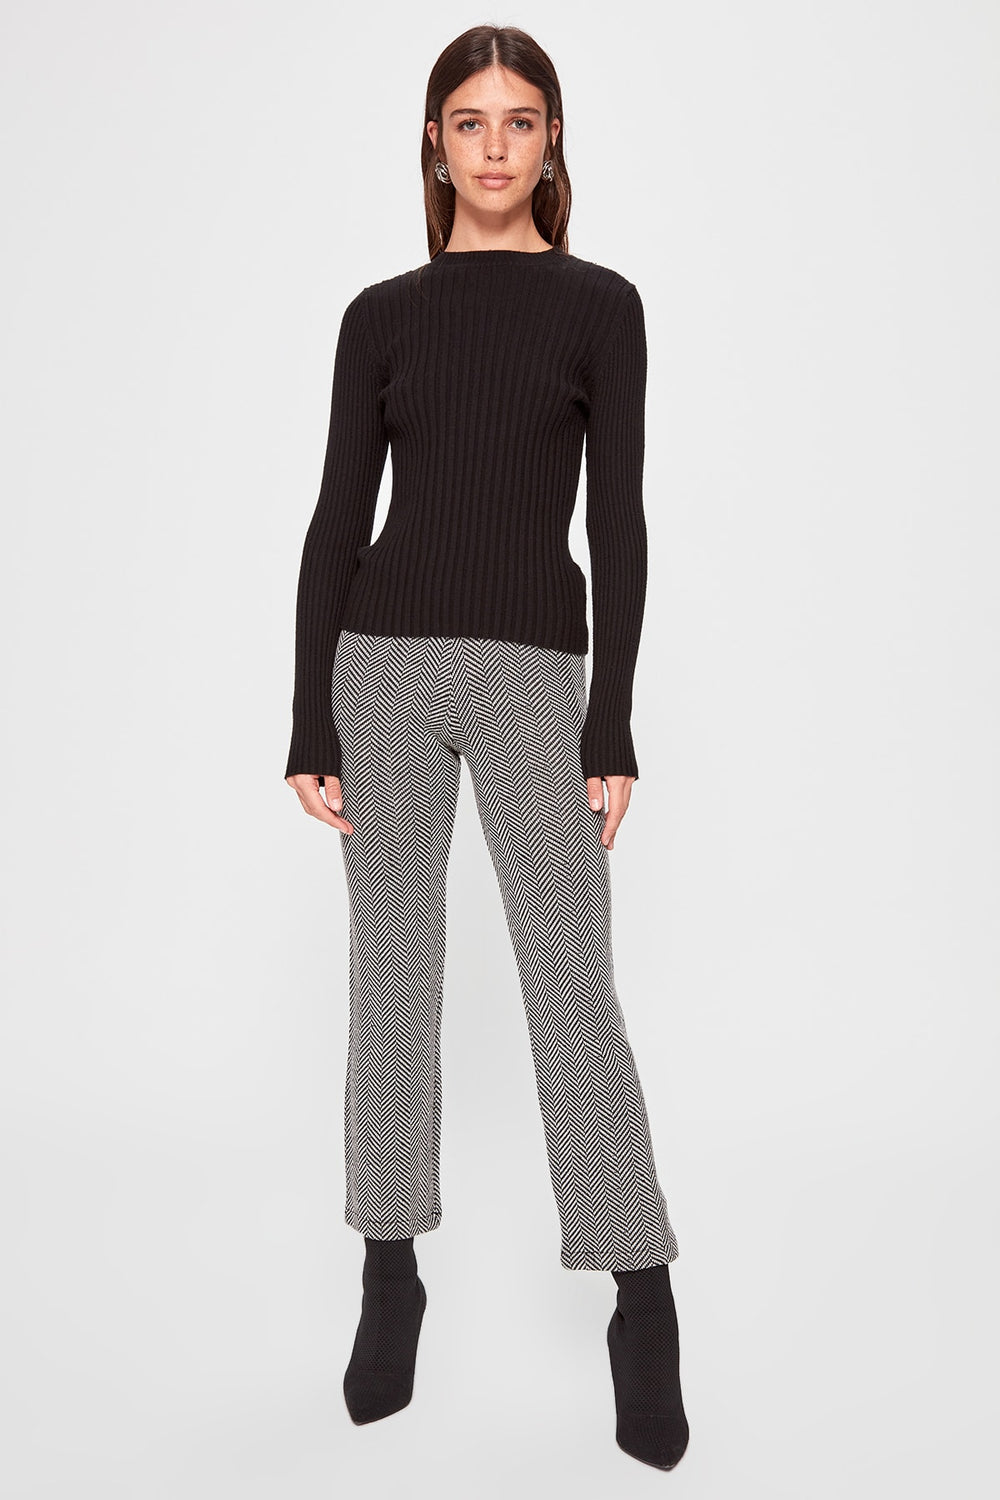 Miss Zut Miss Zut Striped Sweater Pants Miss Zut &CO